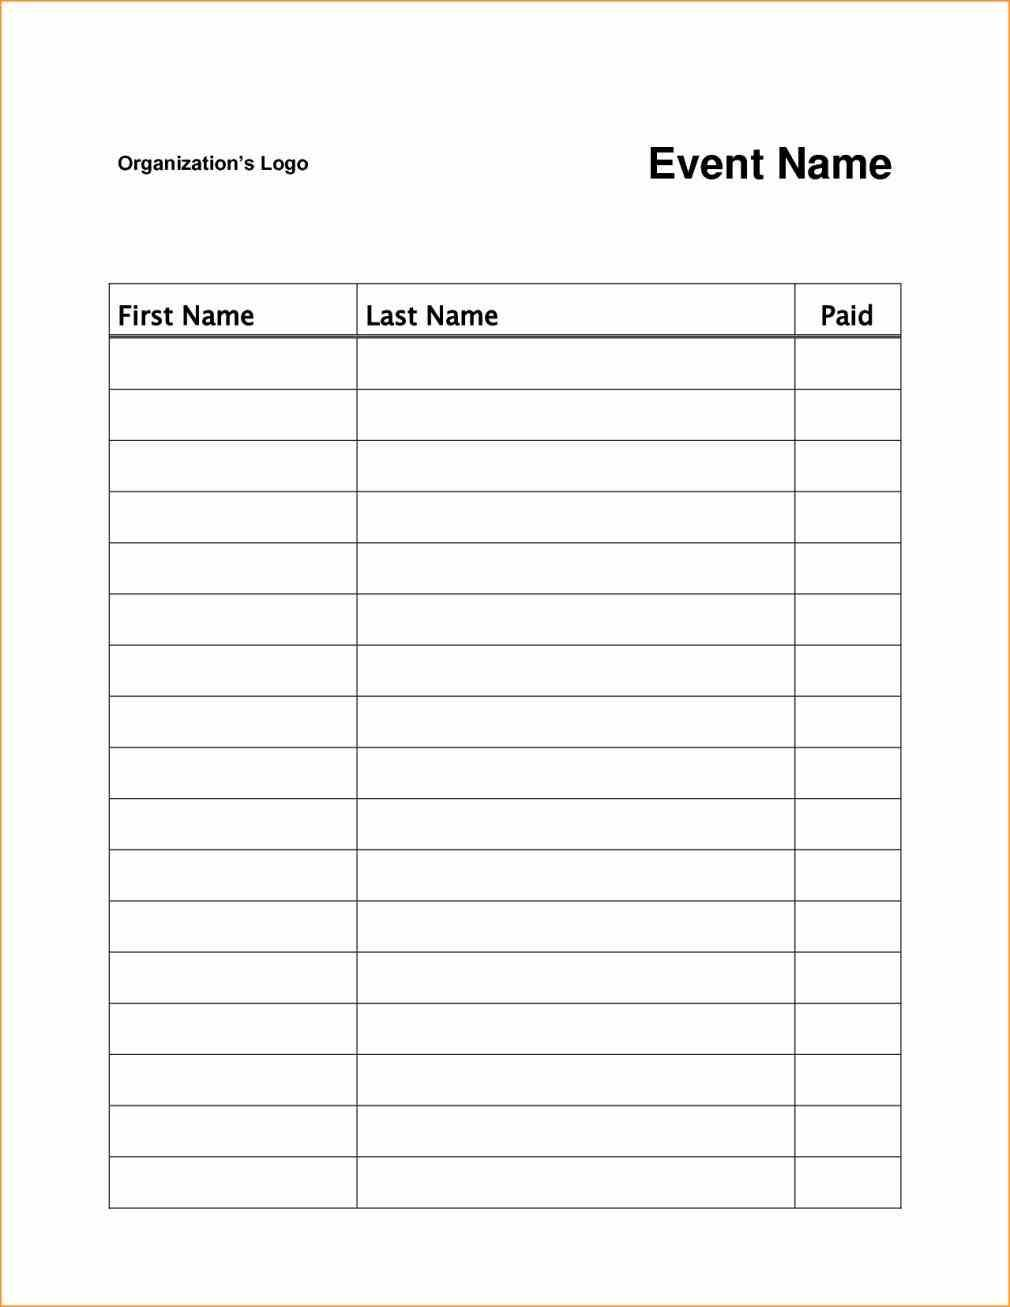 Event Or Class Workshop Forms A Sign Up Sheet Template Word Simple Signup  Sheet With Room